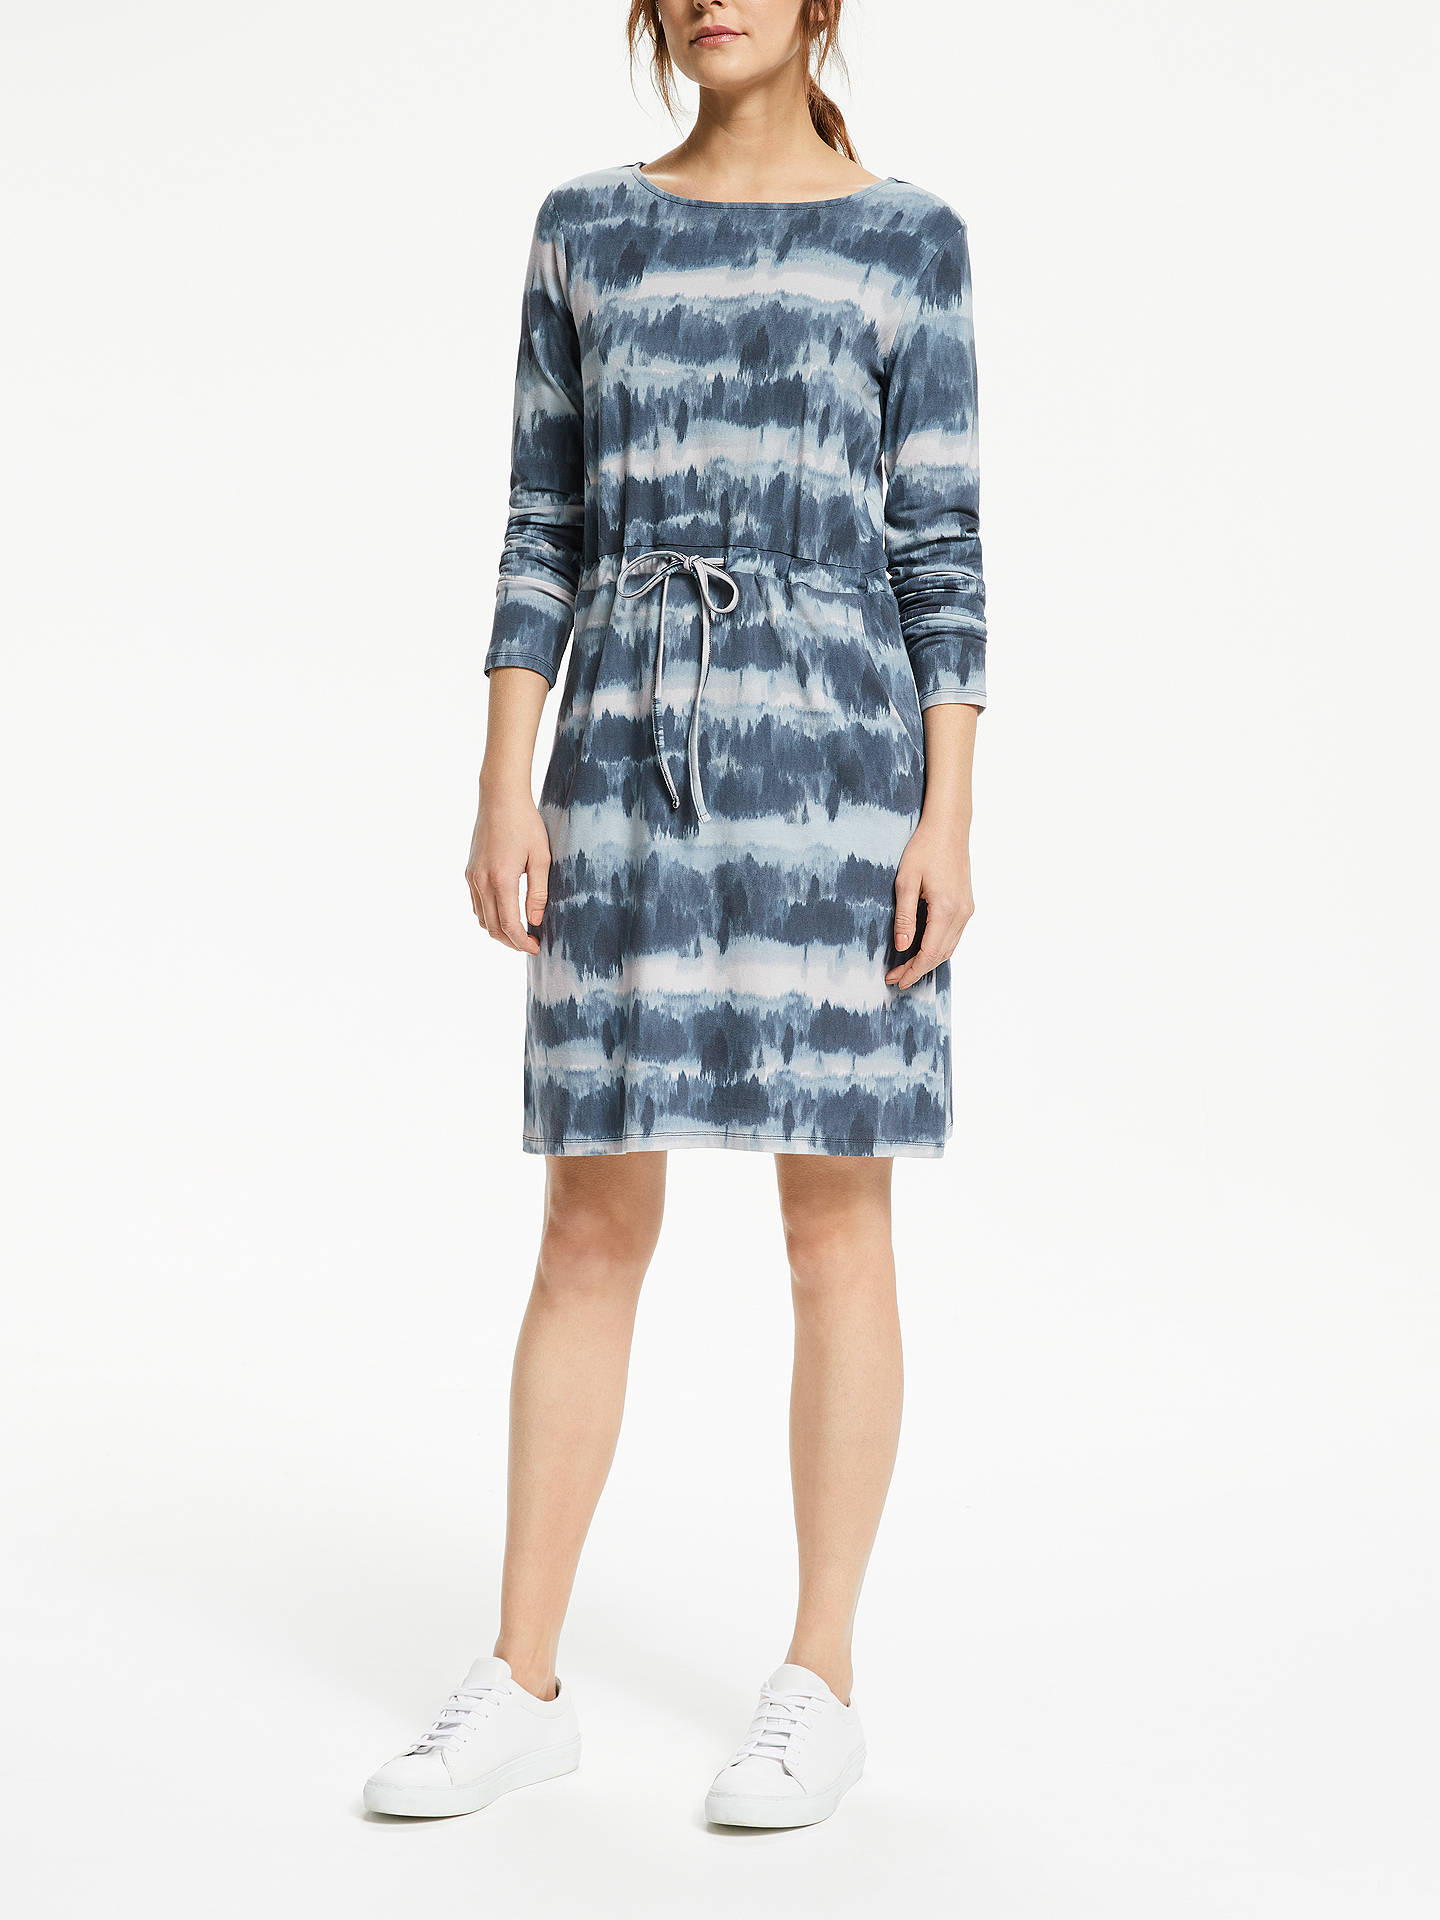 84f8d92b51 ... Buy Thought Ingryd Bamboo Dress, Ocean Blue, 14 Online at johnlewis.com  ...